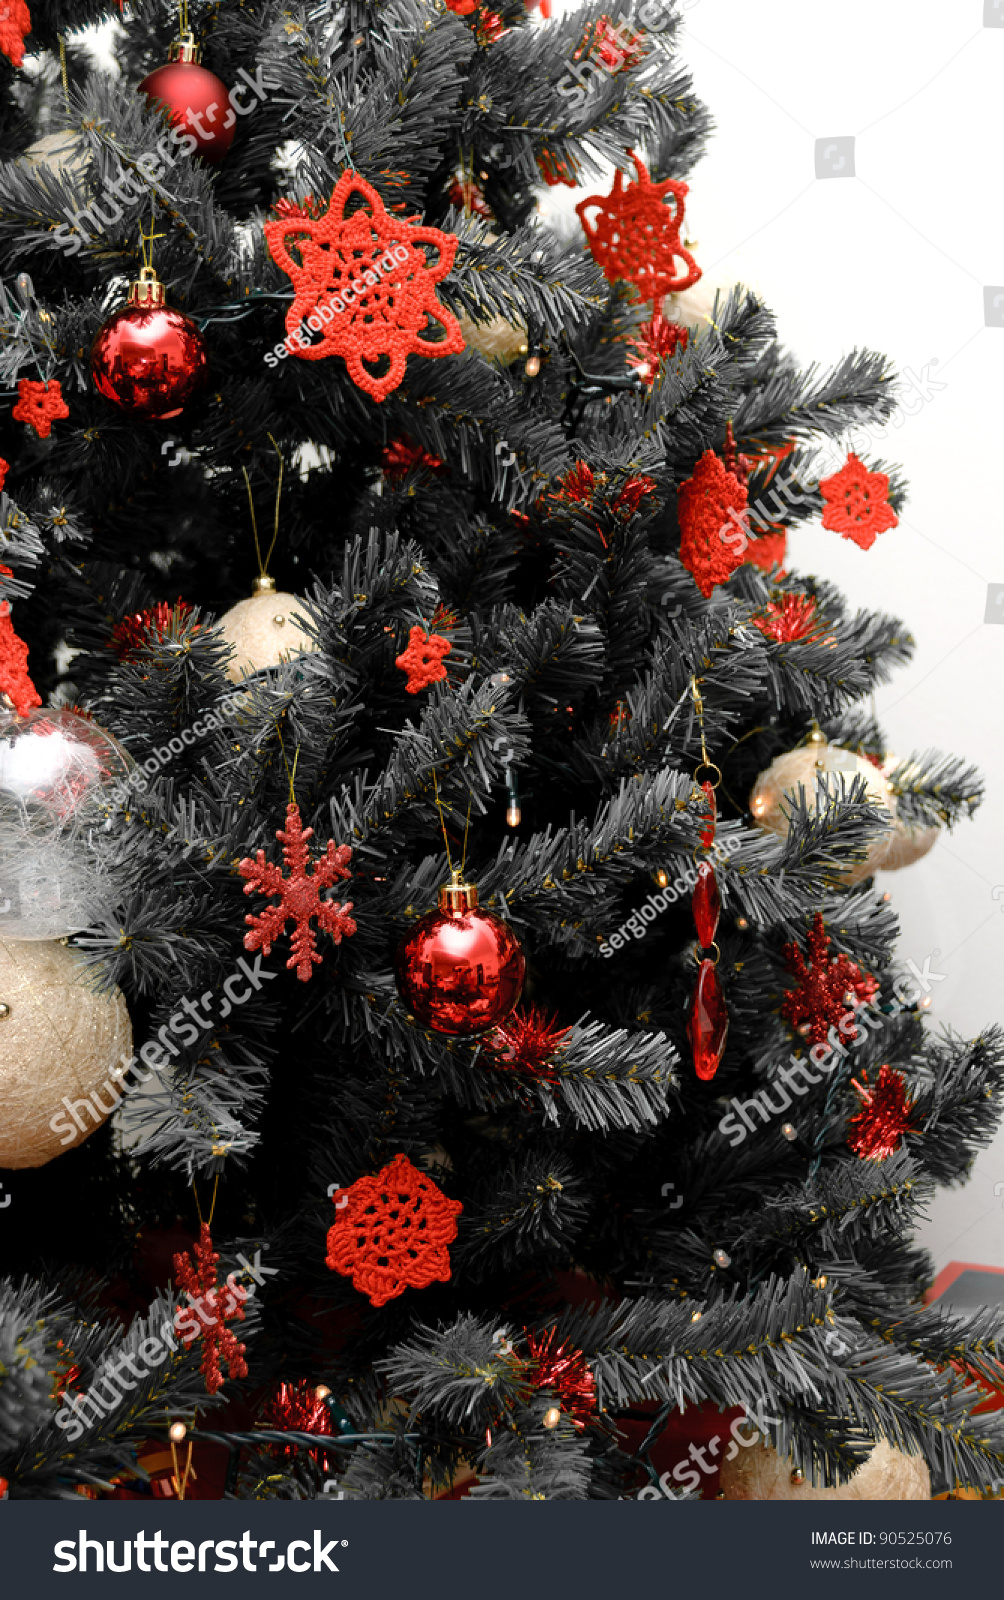 christmas tree in black and white with red decorations - Red And Black Christmas Decorations